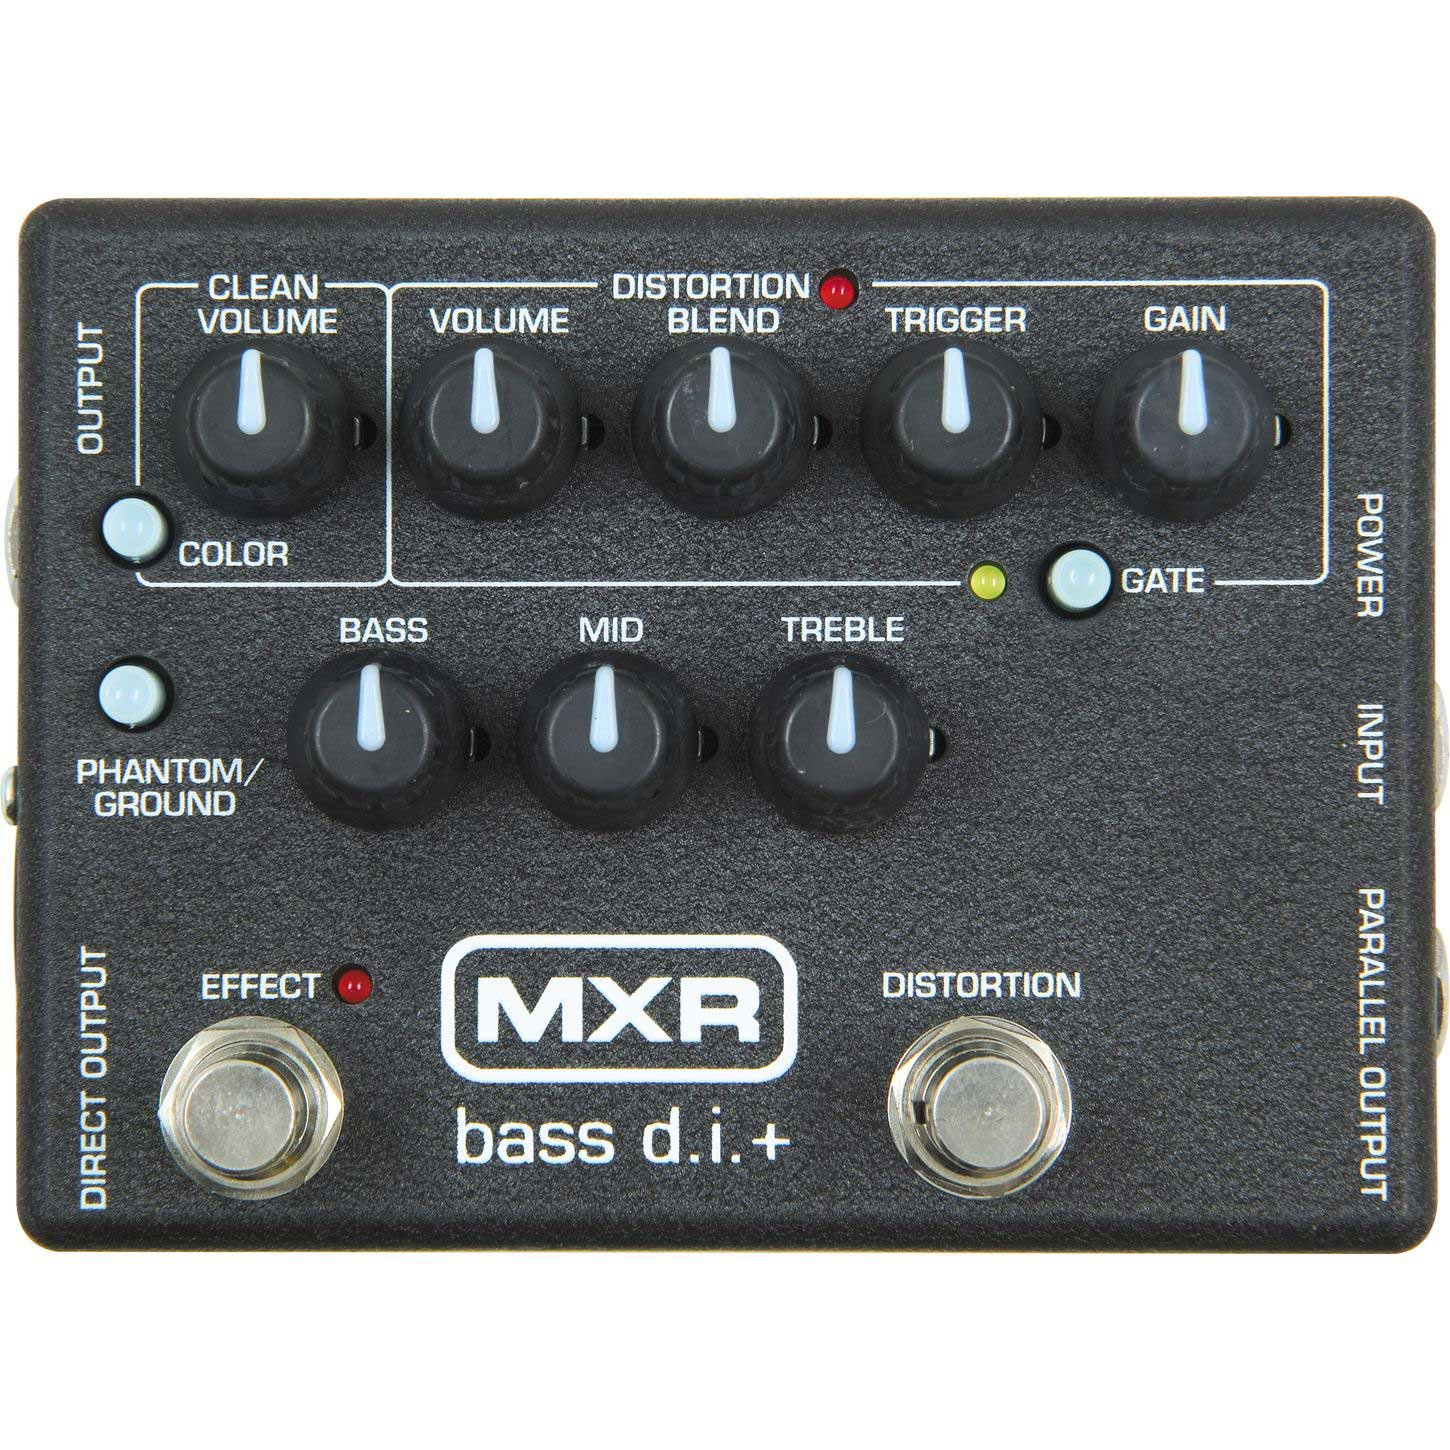 Bass Guitar Effect, DI/Distortion